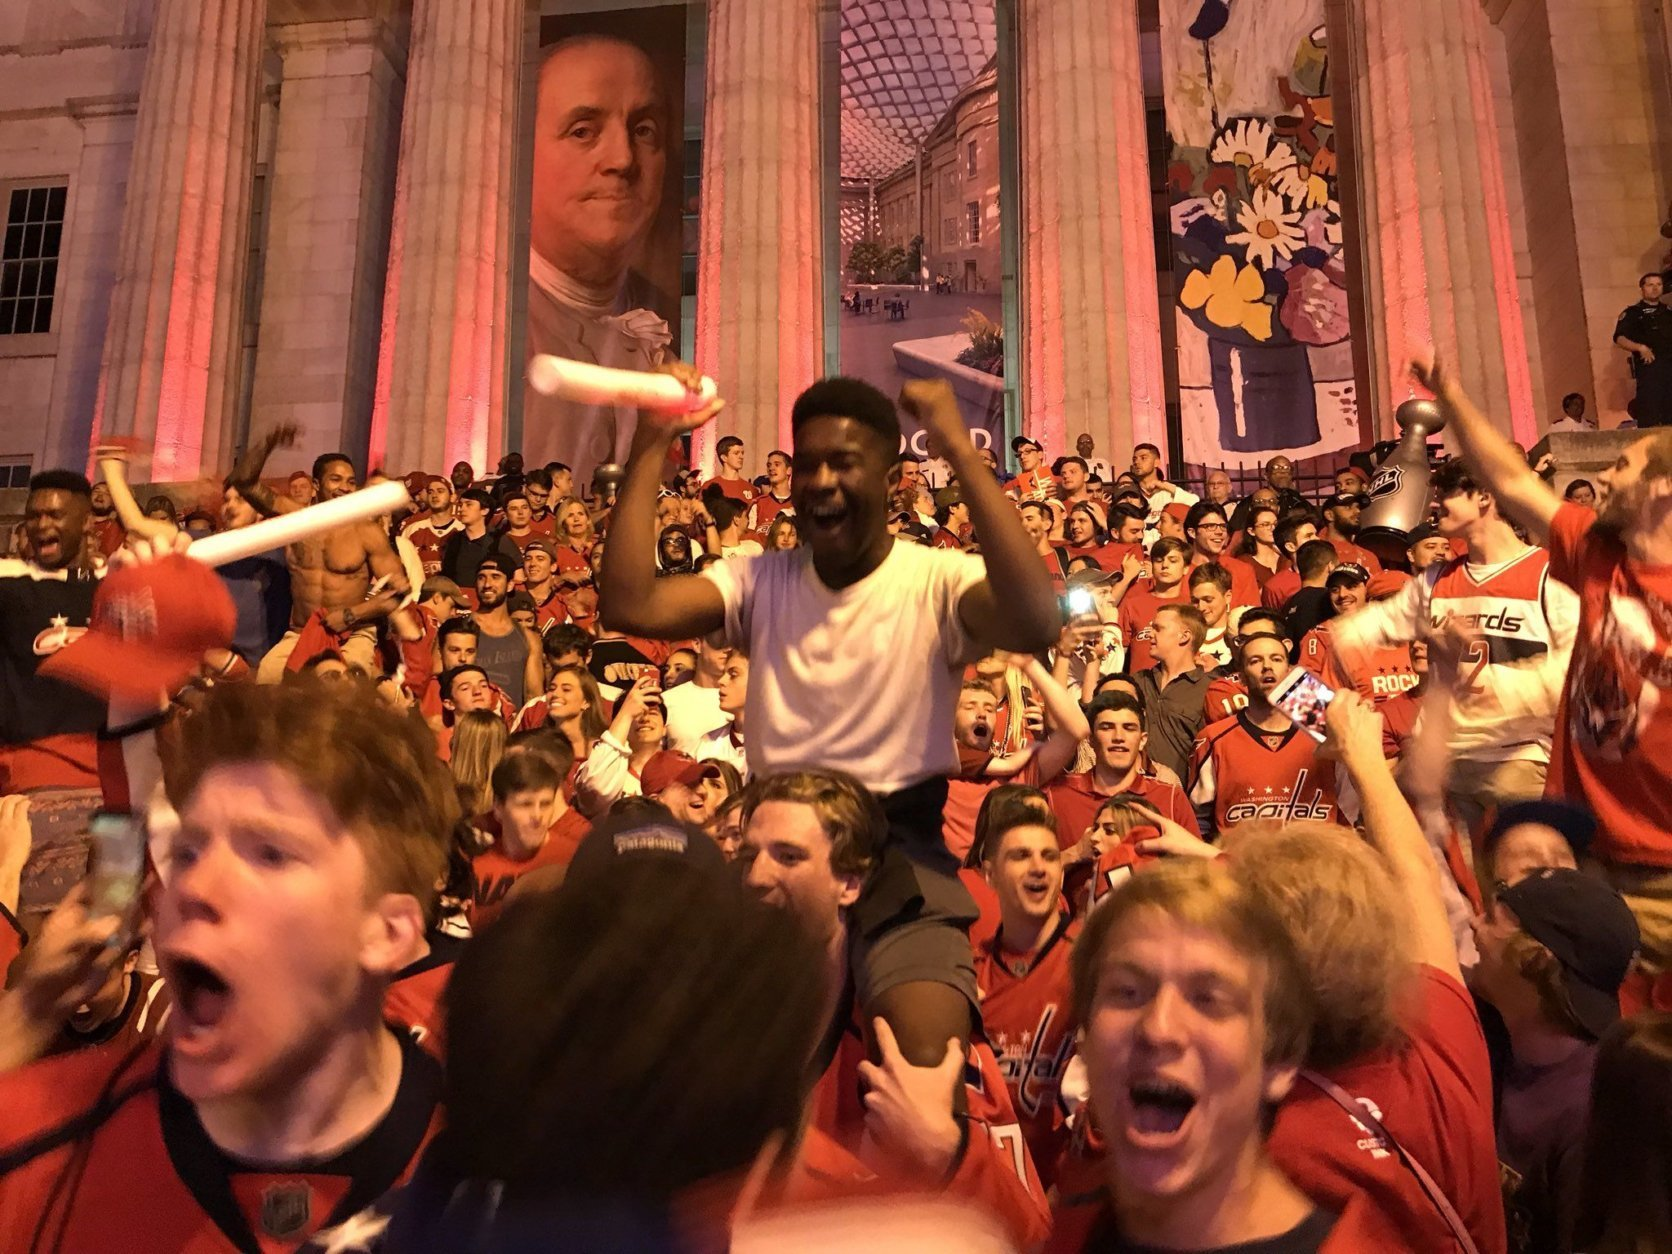 After the Caps beat the Golden Knights 6-2 in Game 4, Caps fans outside the Capital One Arena in Washington, D.C. celebrated in earnest on Monday, June 4, 2018. (WTOP/Michelle Basch)